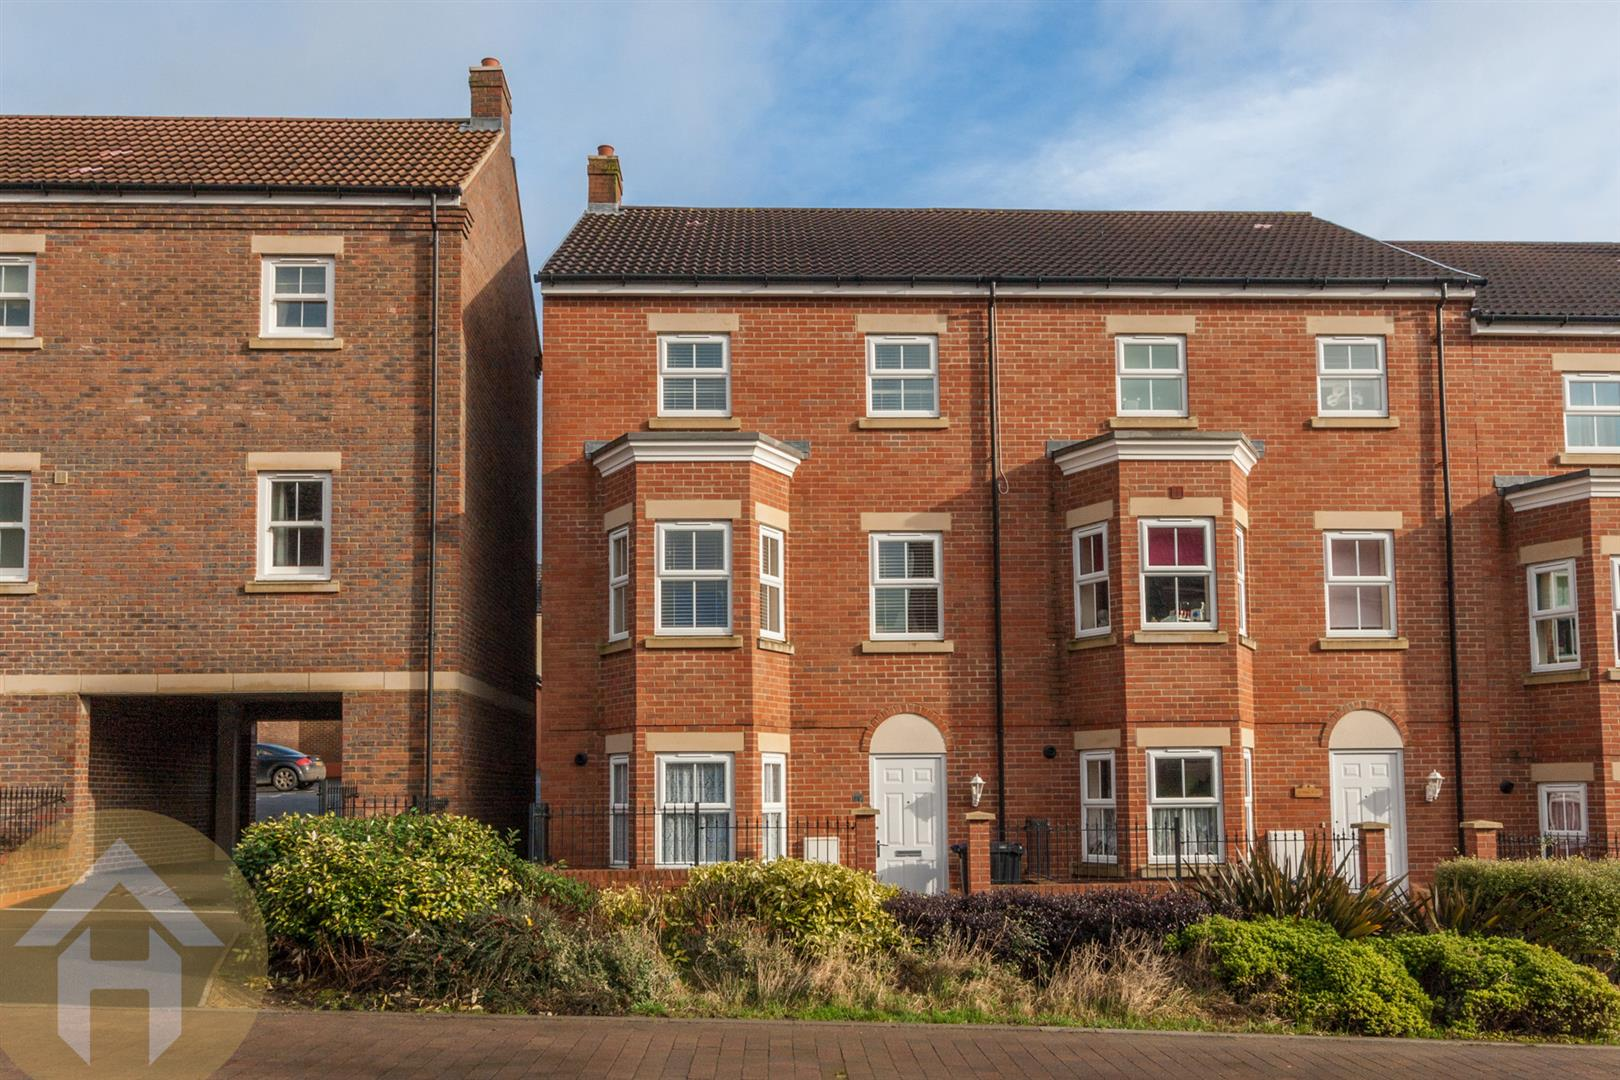 5 Bedrooms End Of Terrace House for sale in Daisy Brook, Royal Wootton Bassett, SN4